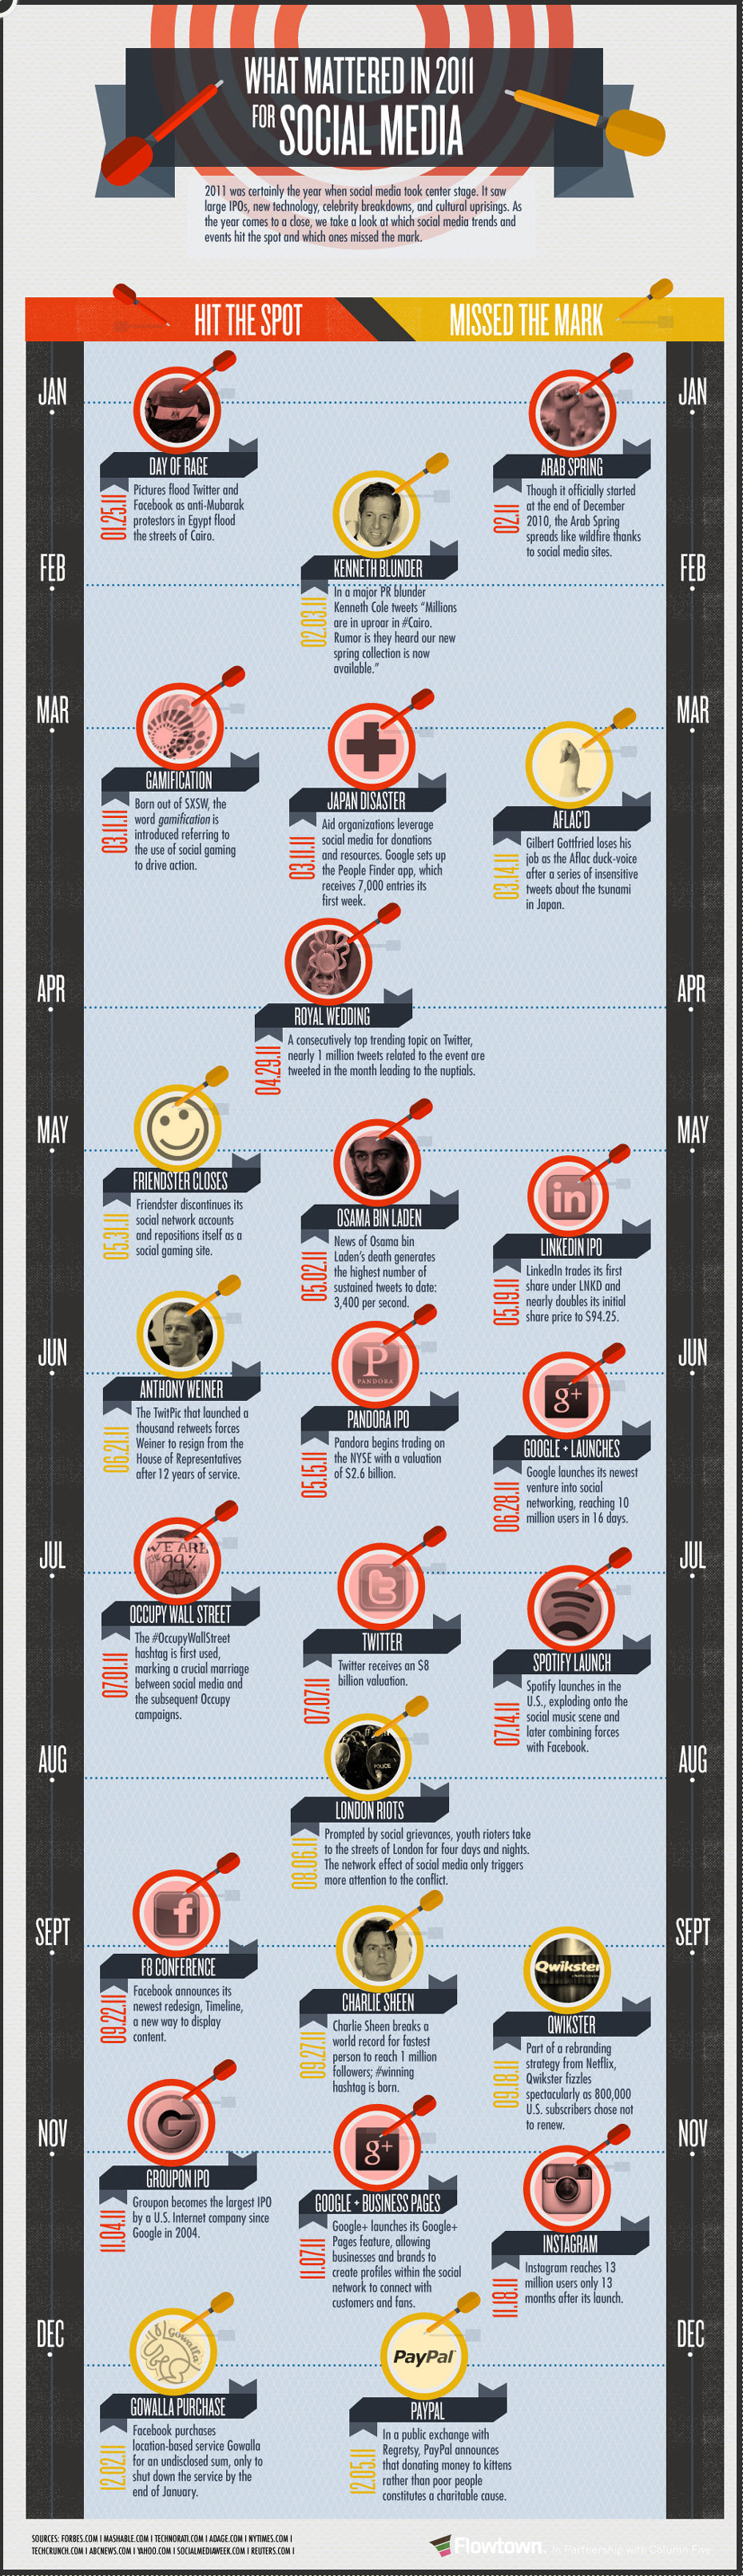 What Happened in Social Media in 2011 Infographic